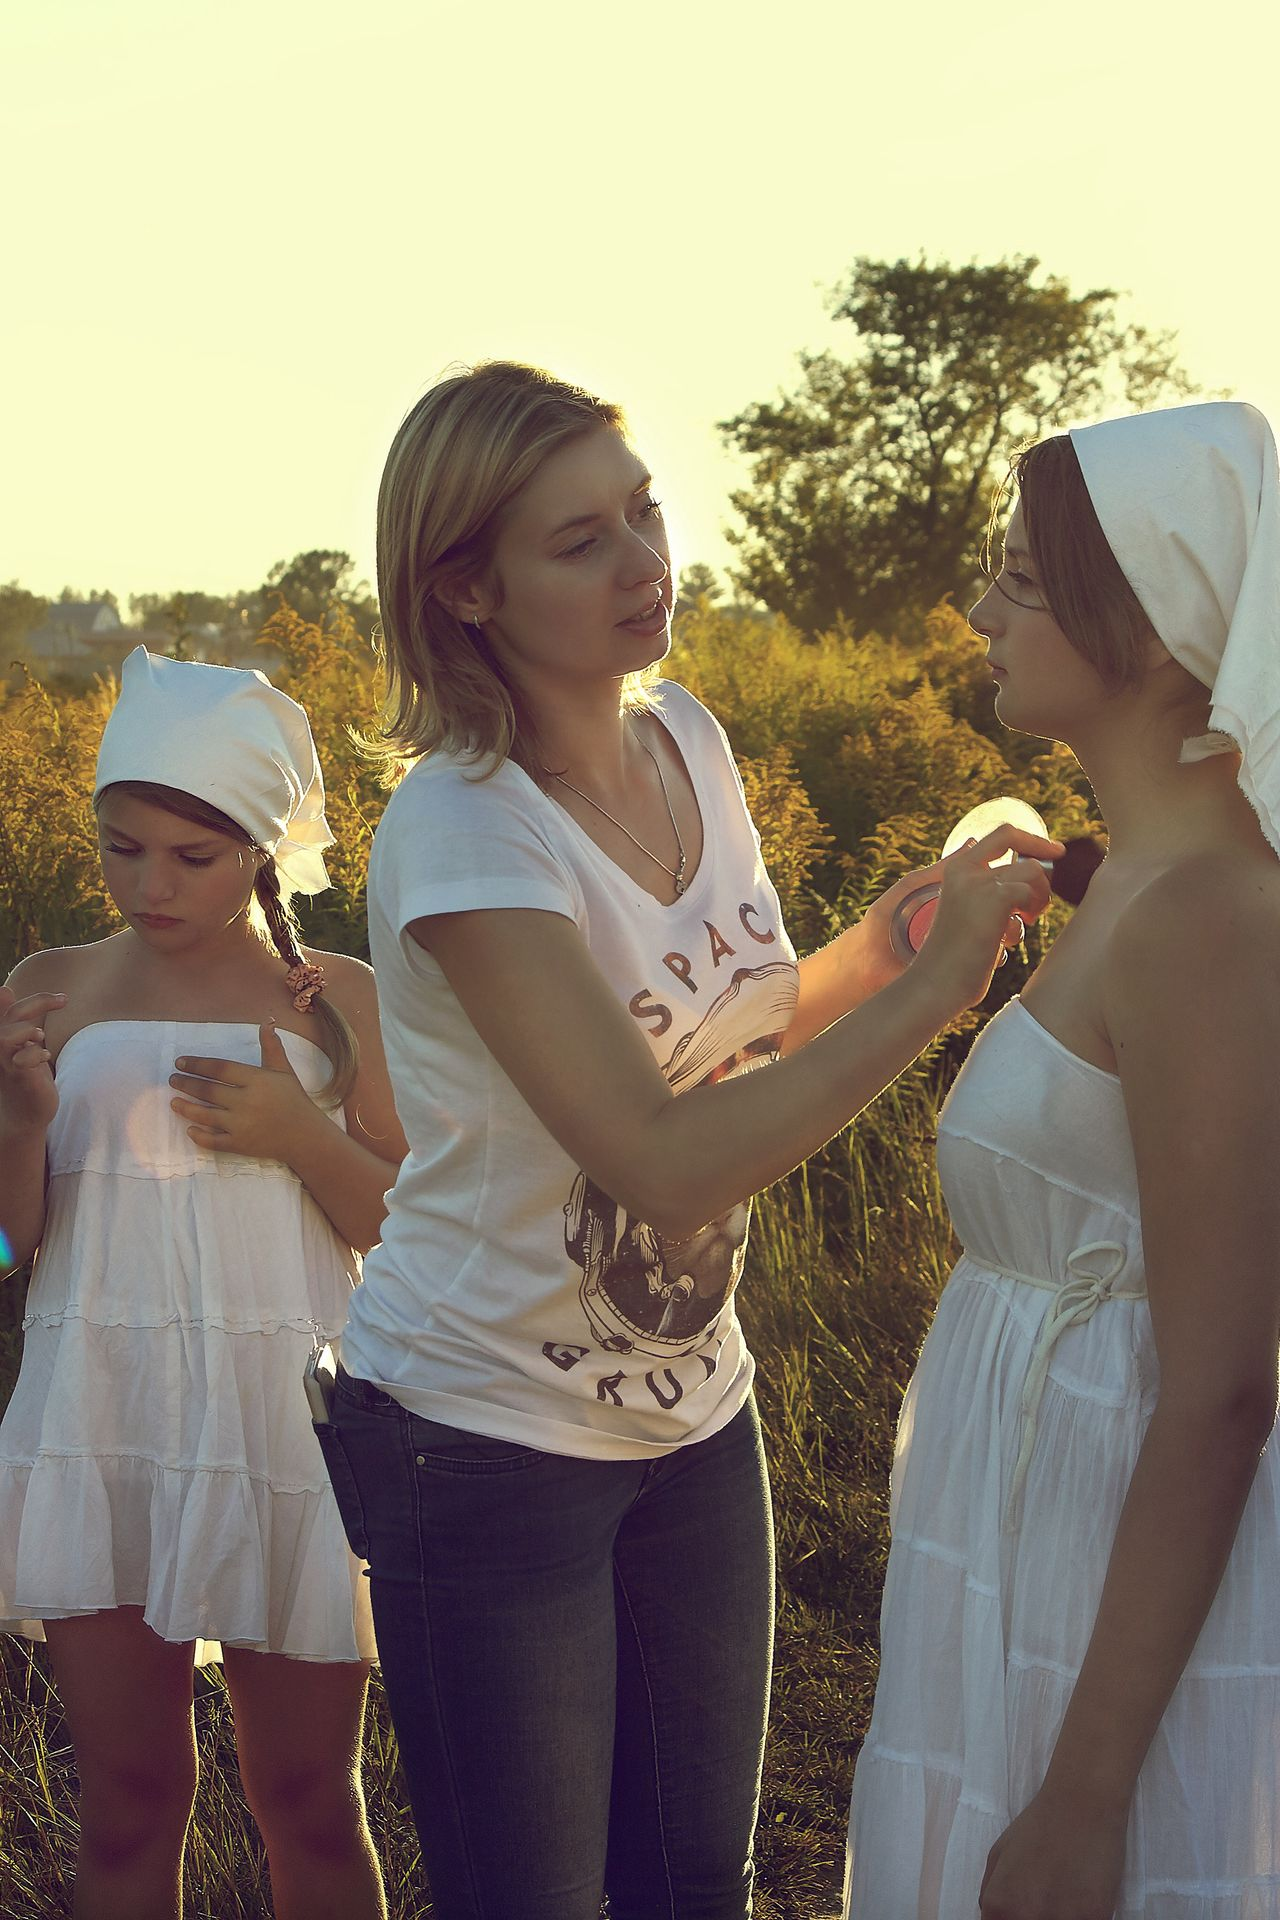 Memory of summer Russia Child Fun Girls Togetherness Females Sunlight Childhood People Lifestyles Summer Outdoors Bonding Friendship Leisure Activity Adult Happiness Young Women Tree Day Young Adult Portrait